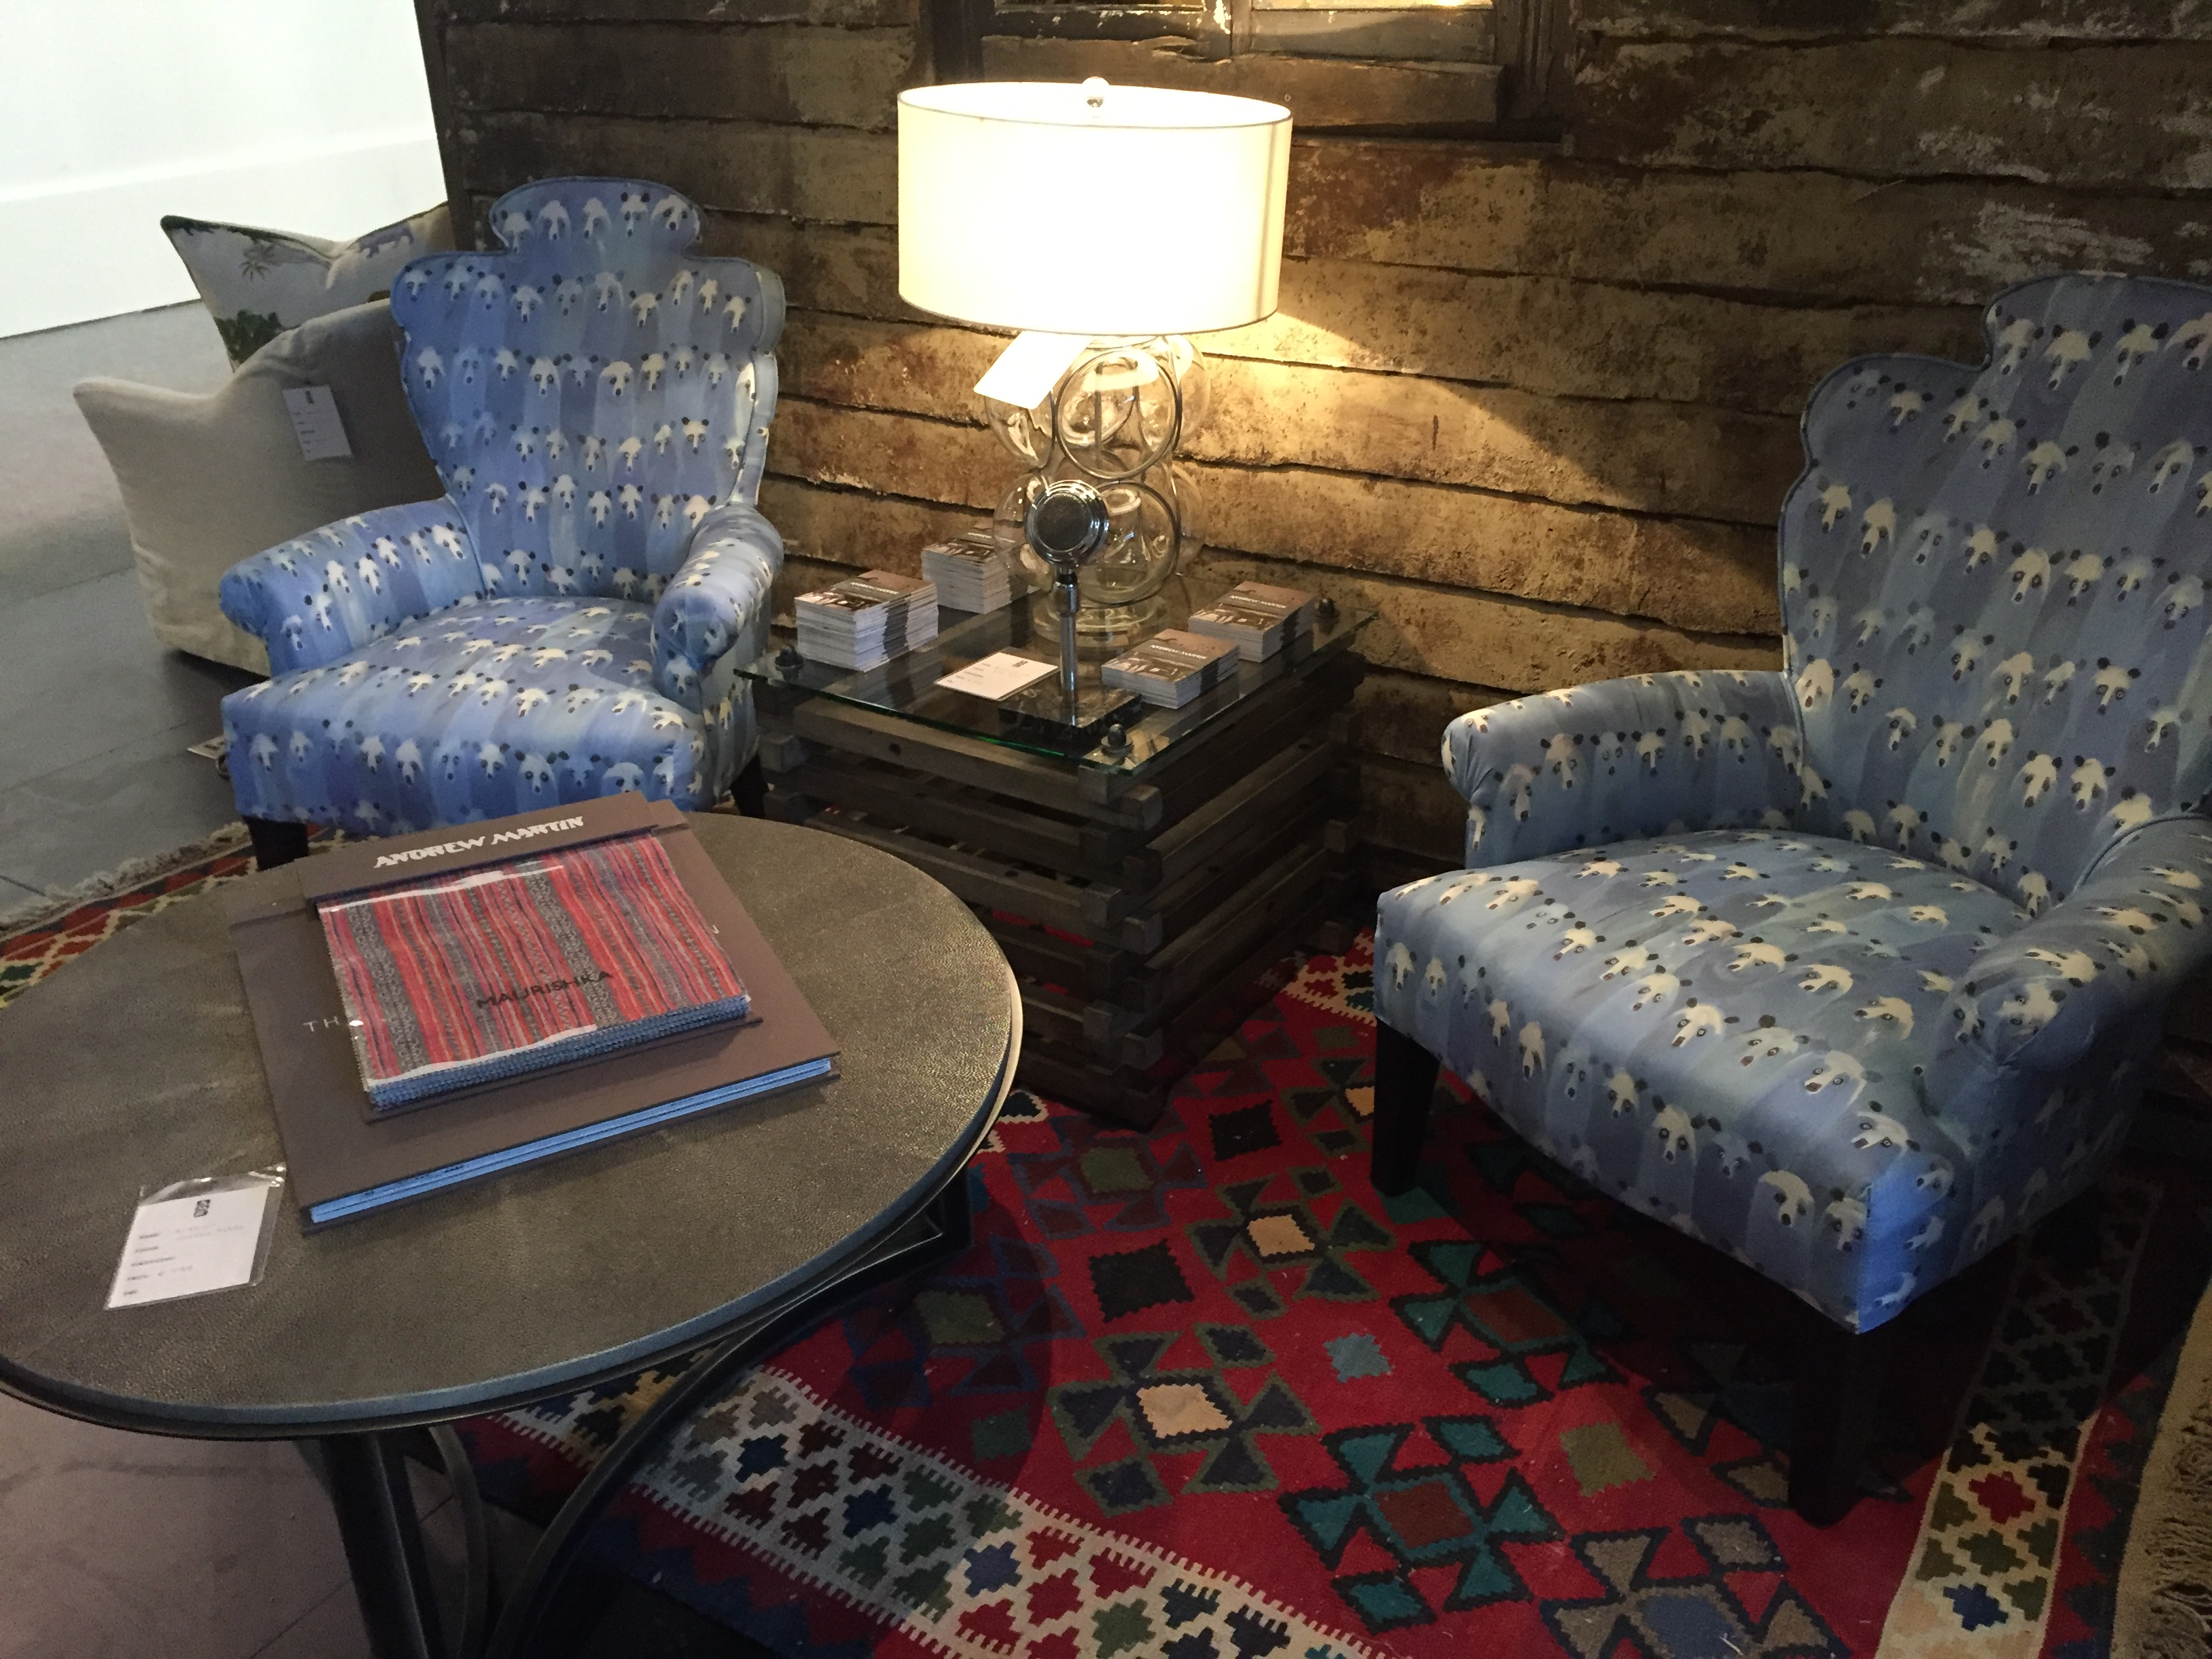 Add an area rug to make your reading nook feel extra cozy and to give it personality